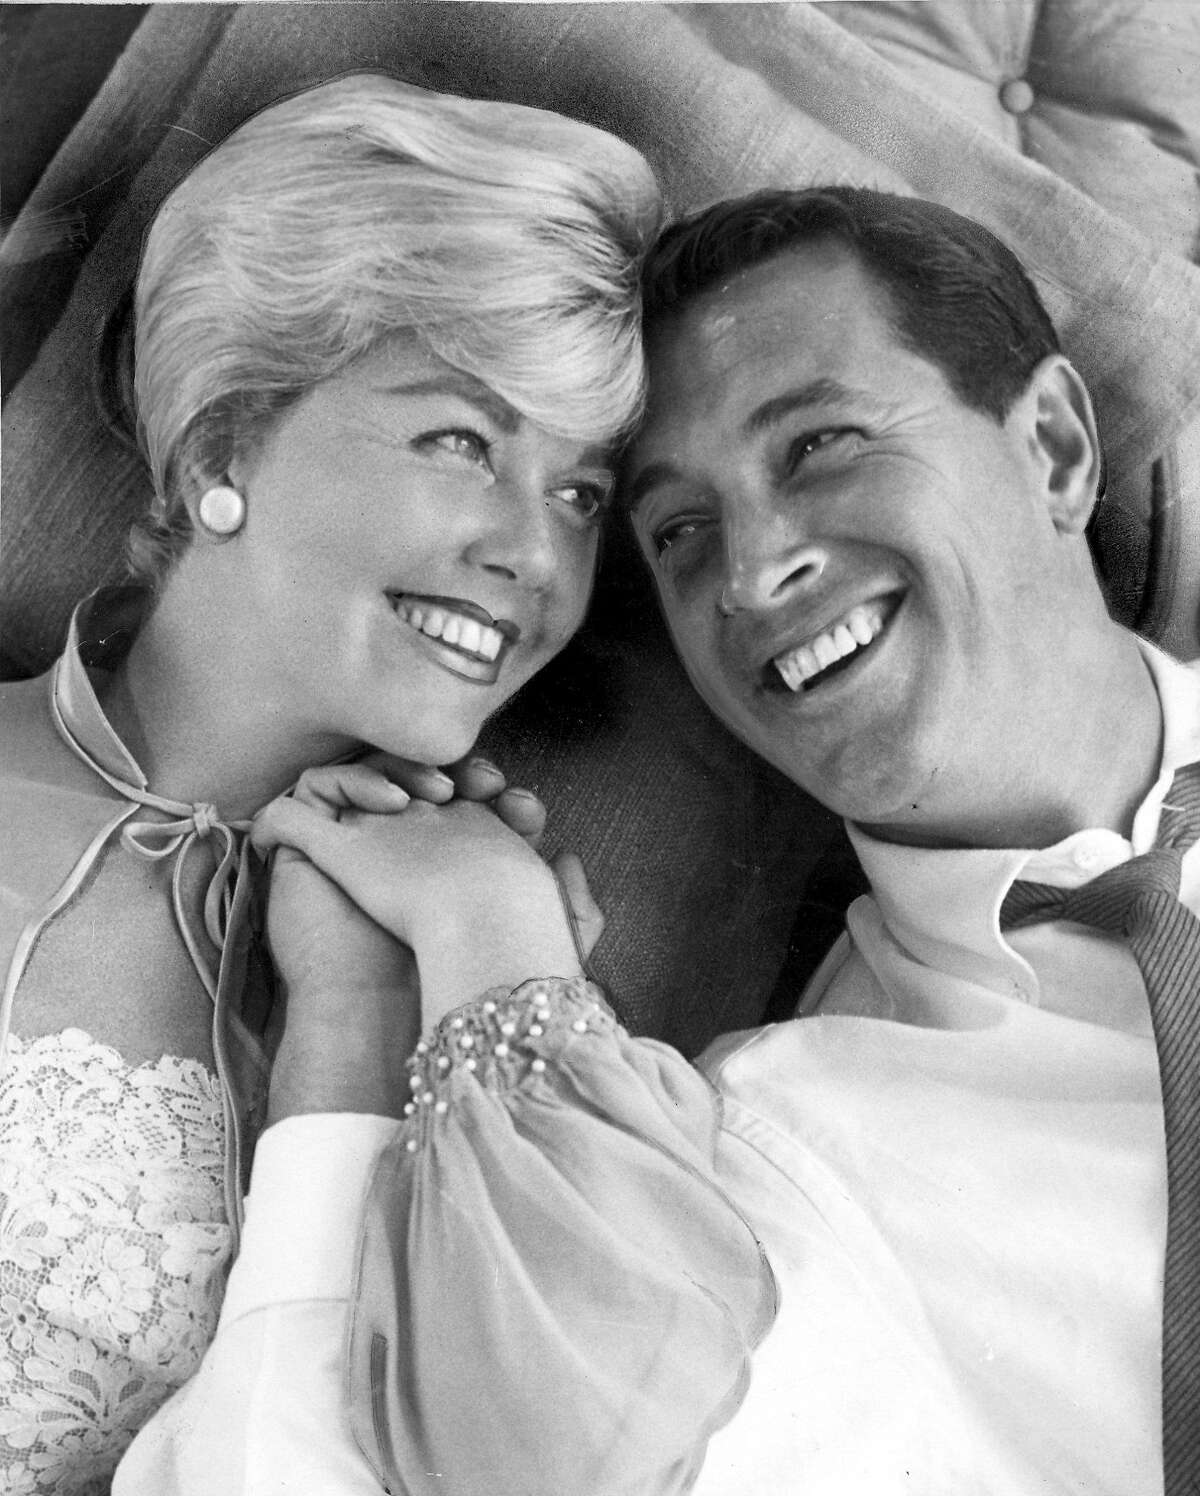 """Doris Day and Rock Hudson in """"Pillow Talk."""" Ran on: 02-12-2007 Rock Hudson, whose sexual orientation was rumored for decades, kept it hidden in order to star in films like Pillow Talk opposite Doris Day in 1959. Ran on: 10-03-2010 Rock Hudson with frequent co-star Doris Day in Pillow Talk."""